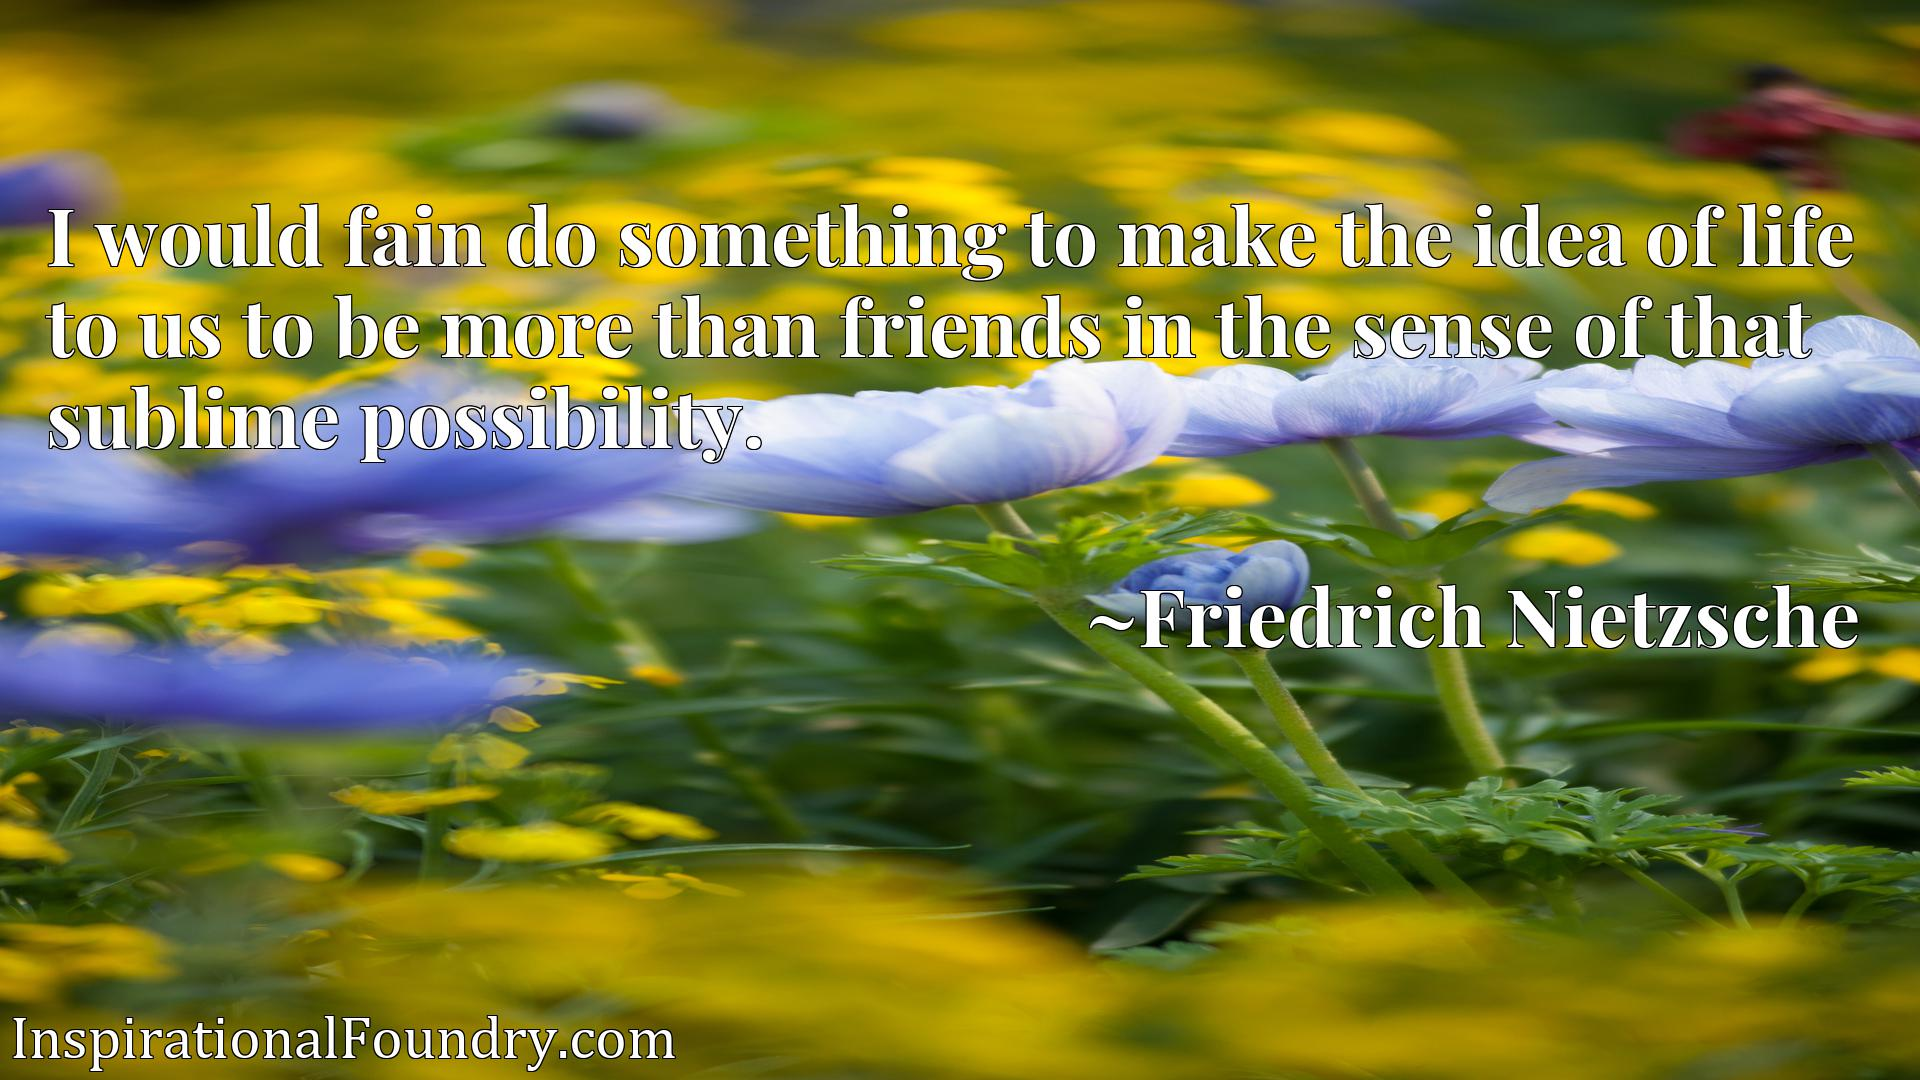 I would fain do something to make the idea of life to us to be more than friends in the sense of that sublime possibility.